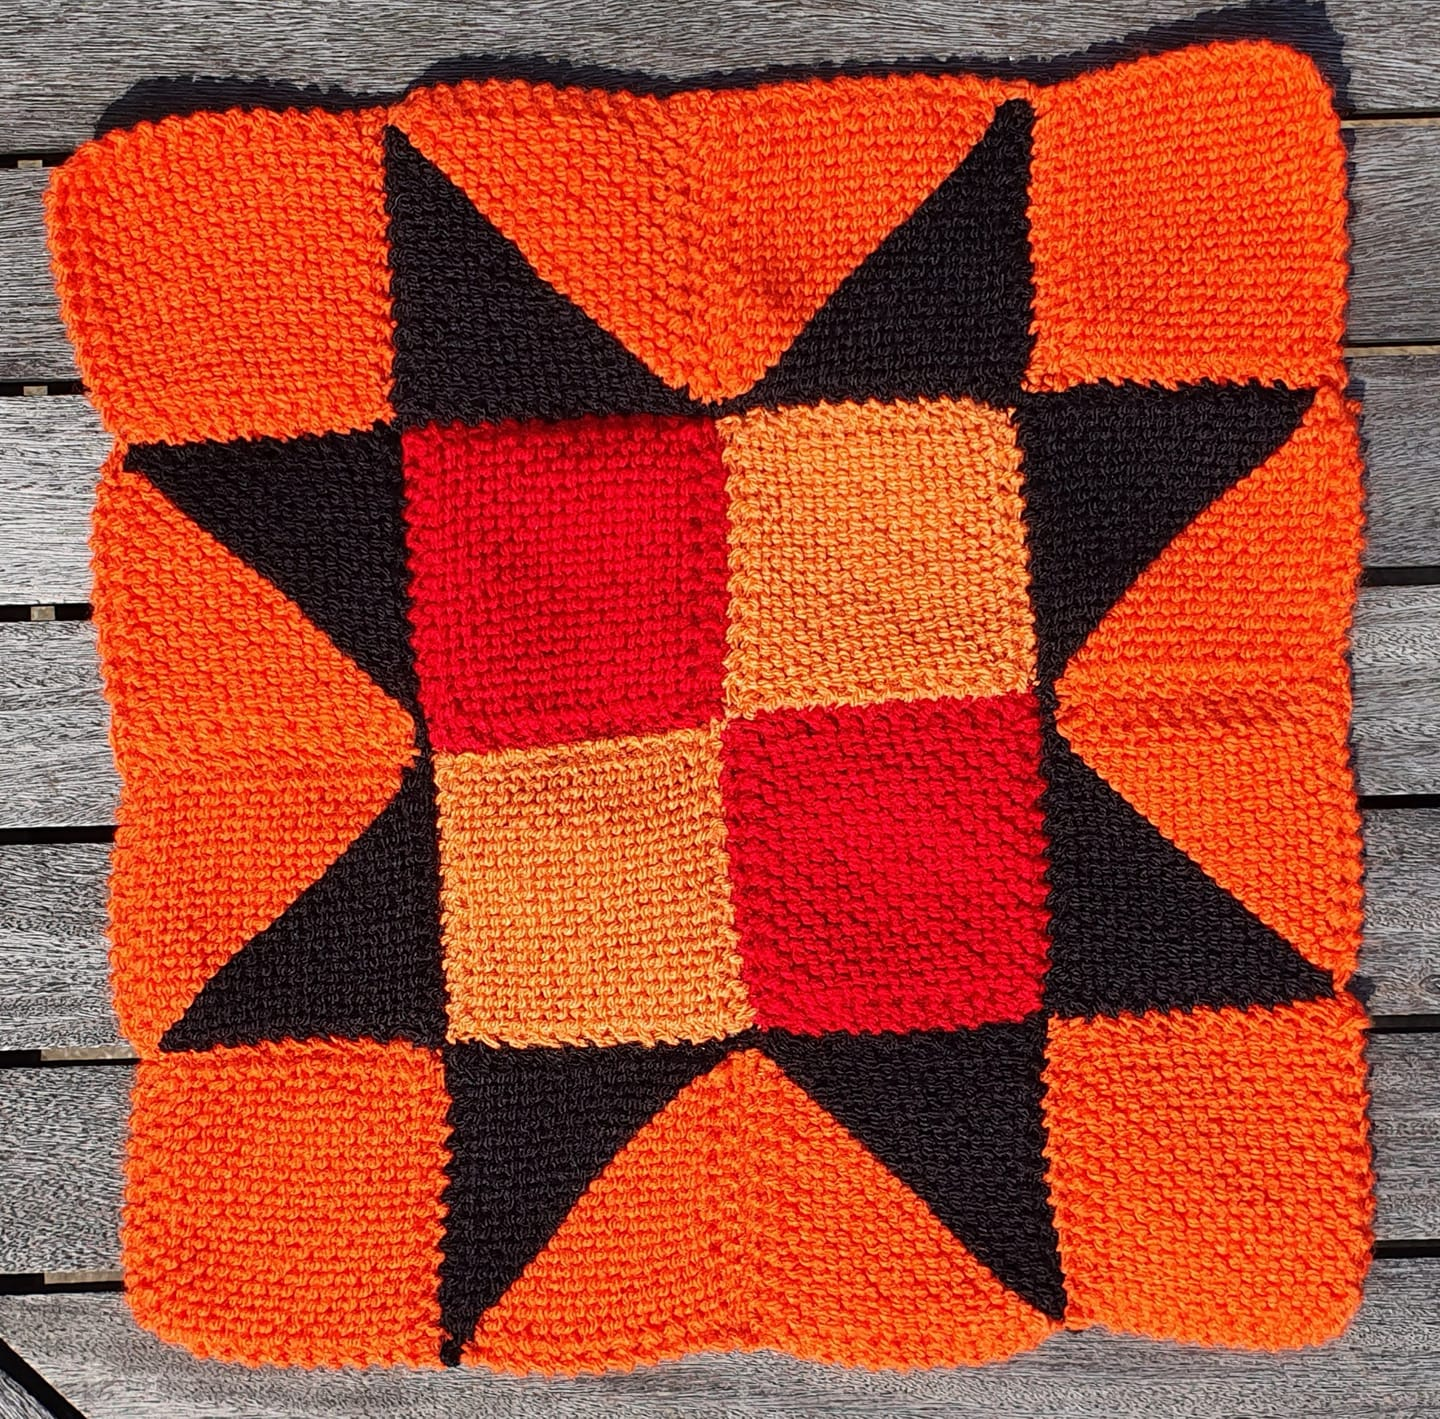 knitted square with geometric orange and black pattern